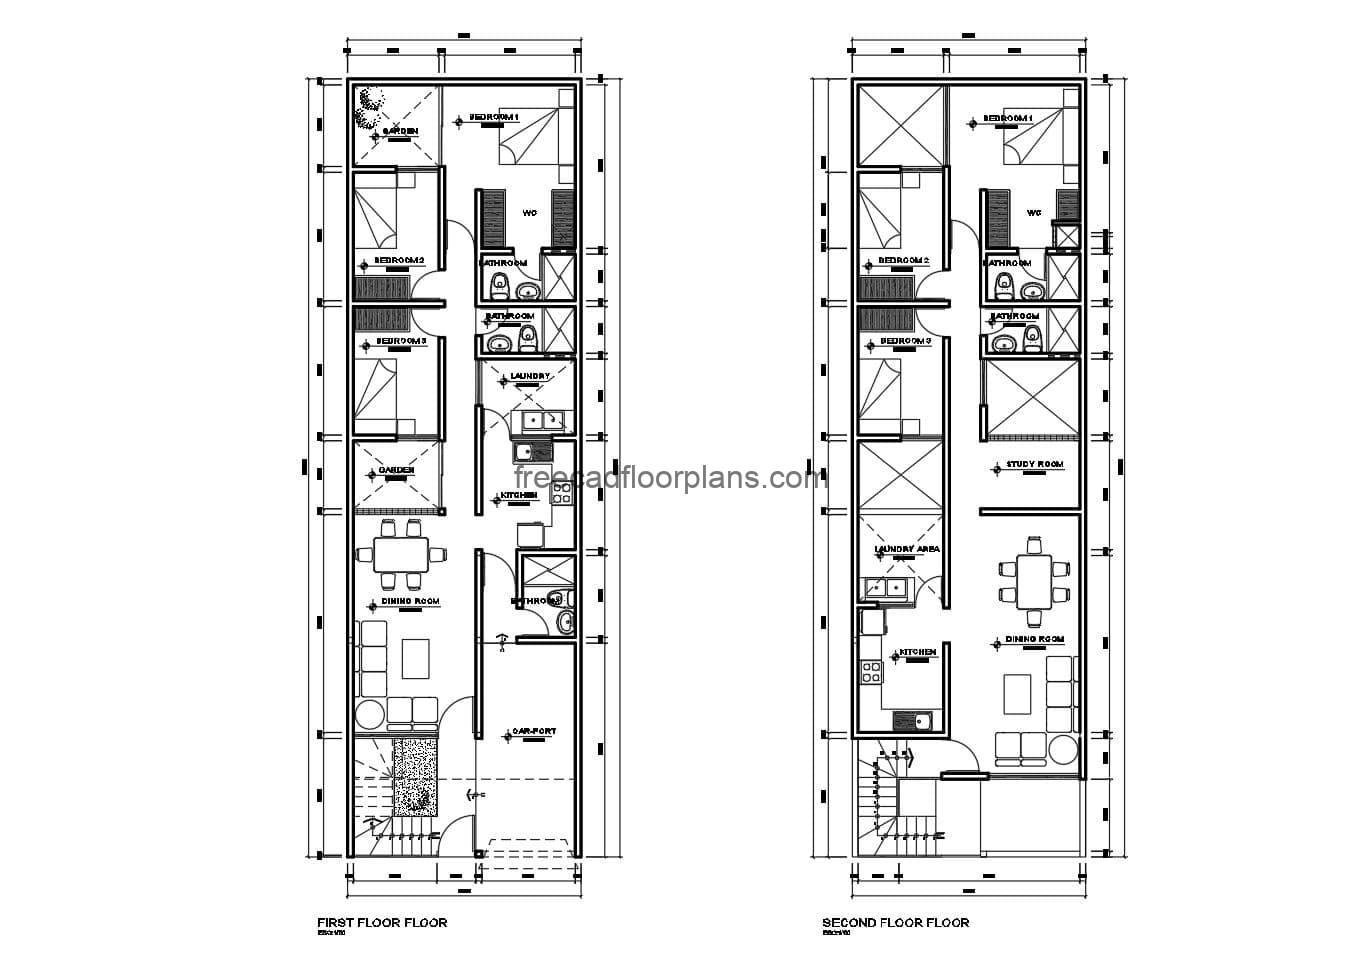 Individual houses on two flat levels with interior distribution and dimensions in DWG Autocad format for free download. elevations, sections and construction details.